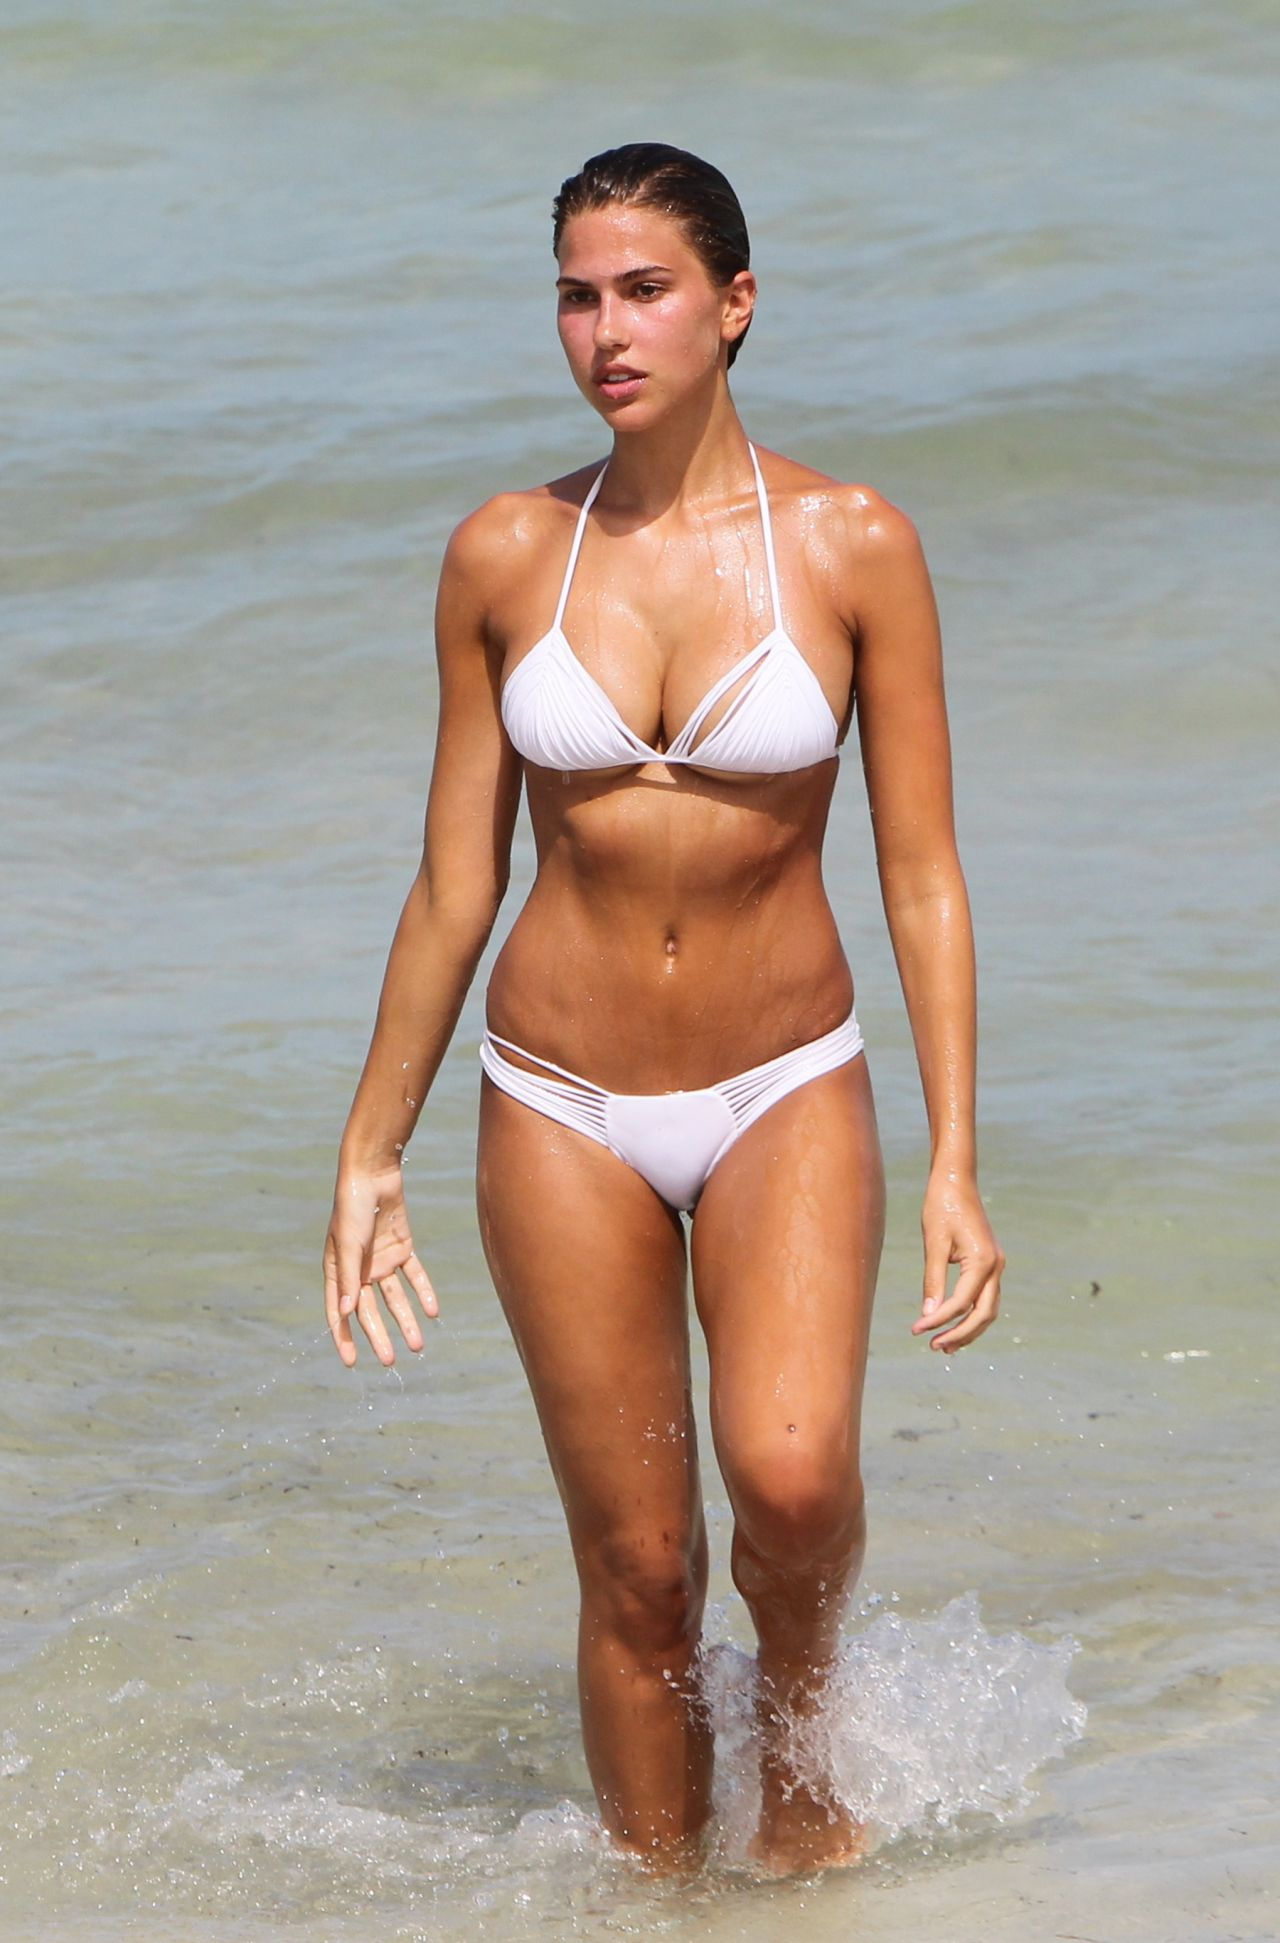 Bikini Kara Del Toro nudes (19 foto and video), Tits, Paparazzi, Feet, braless 2015